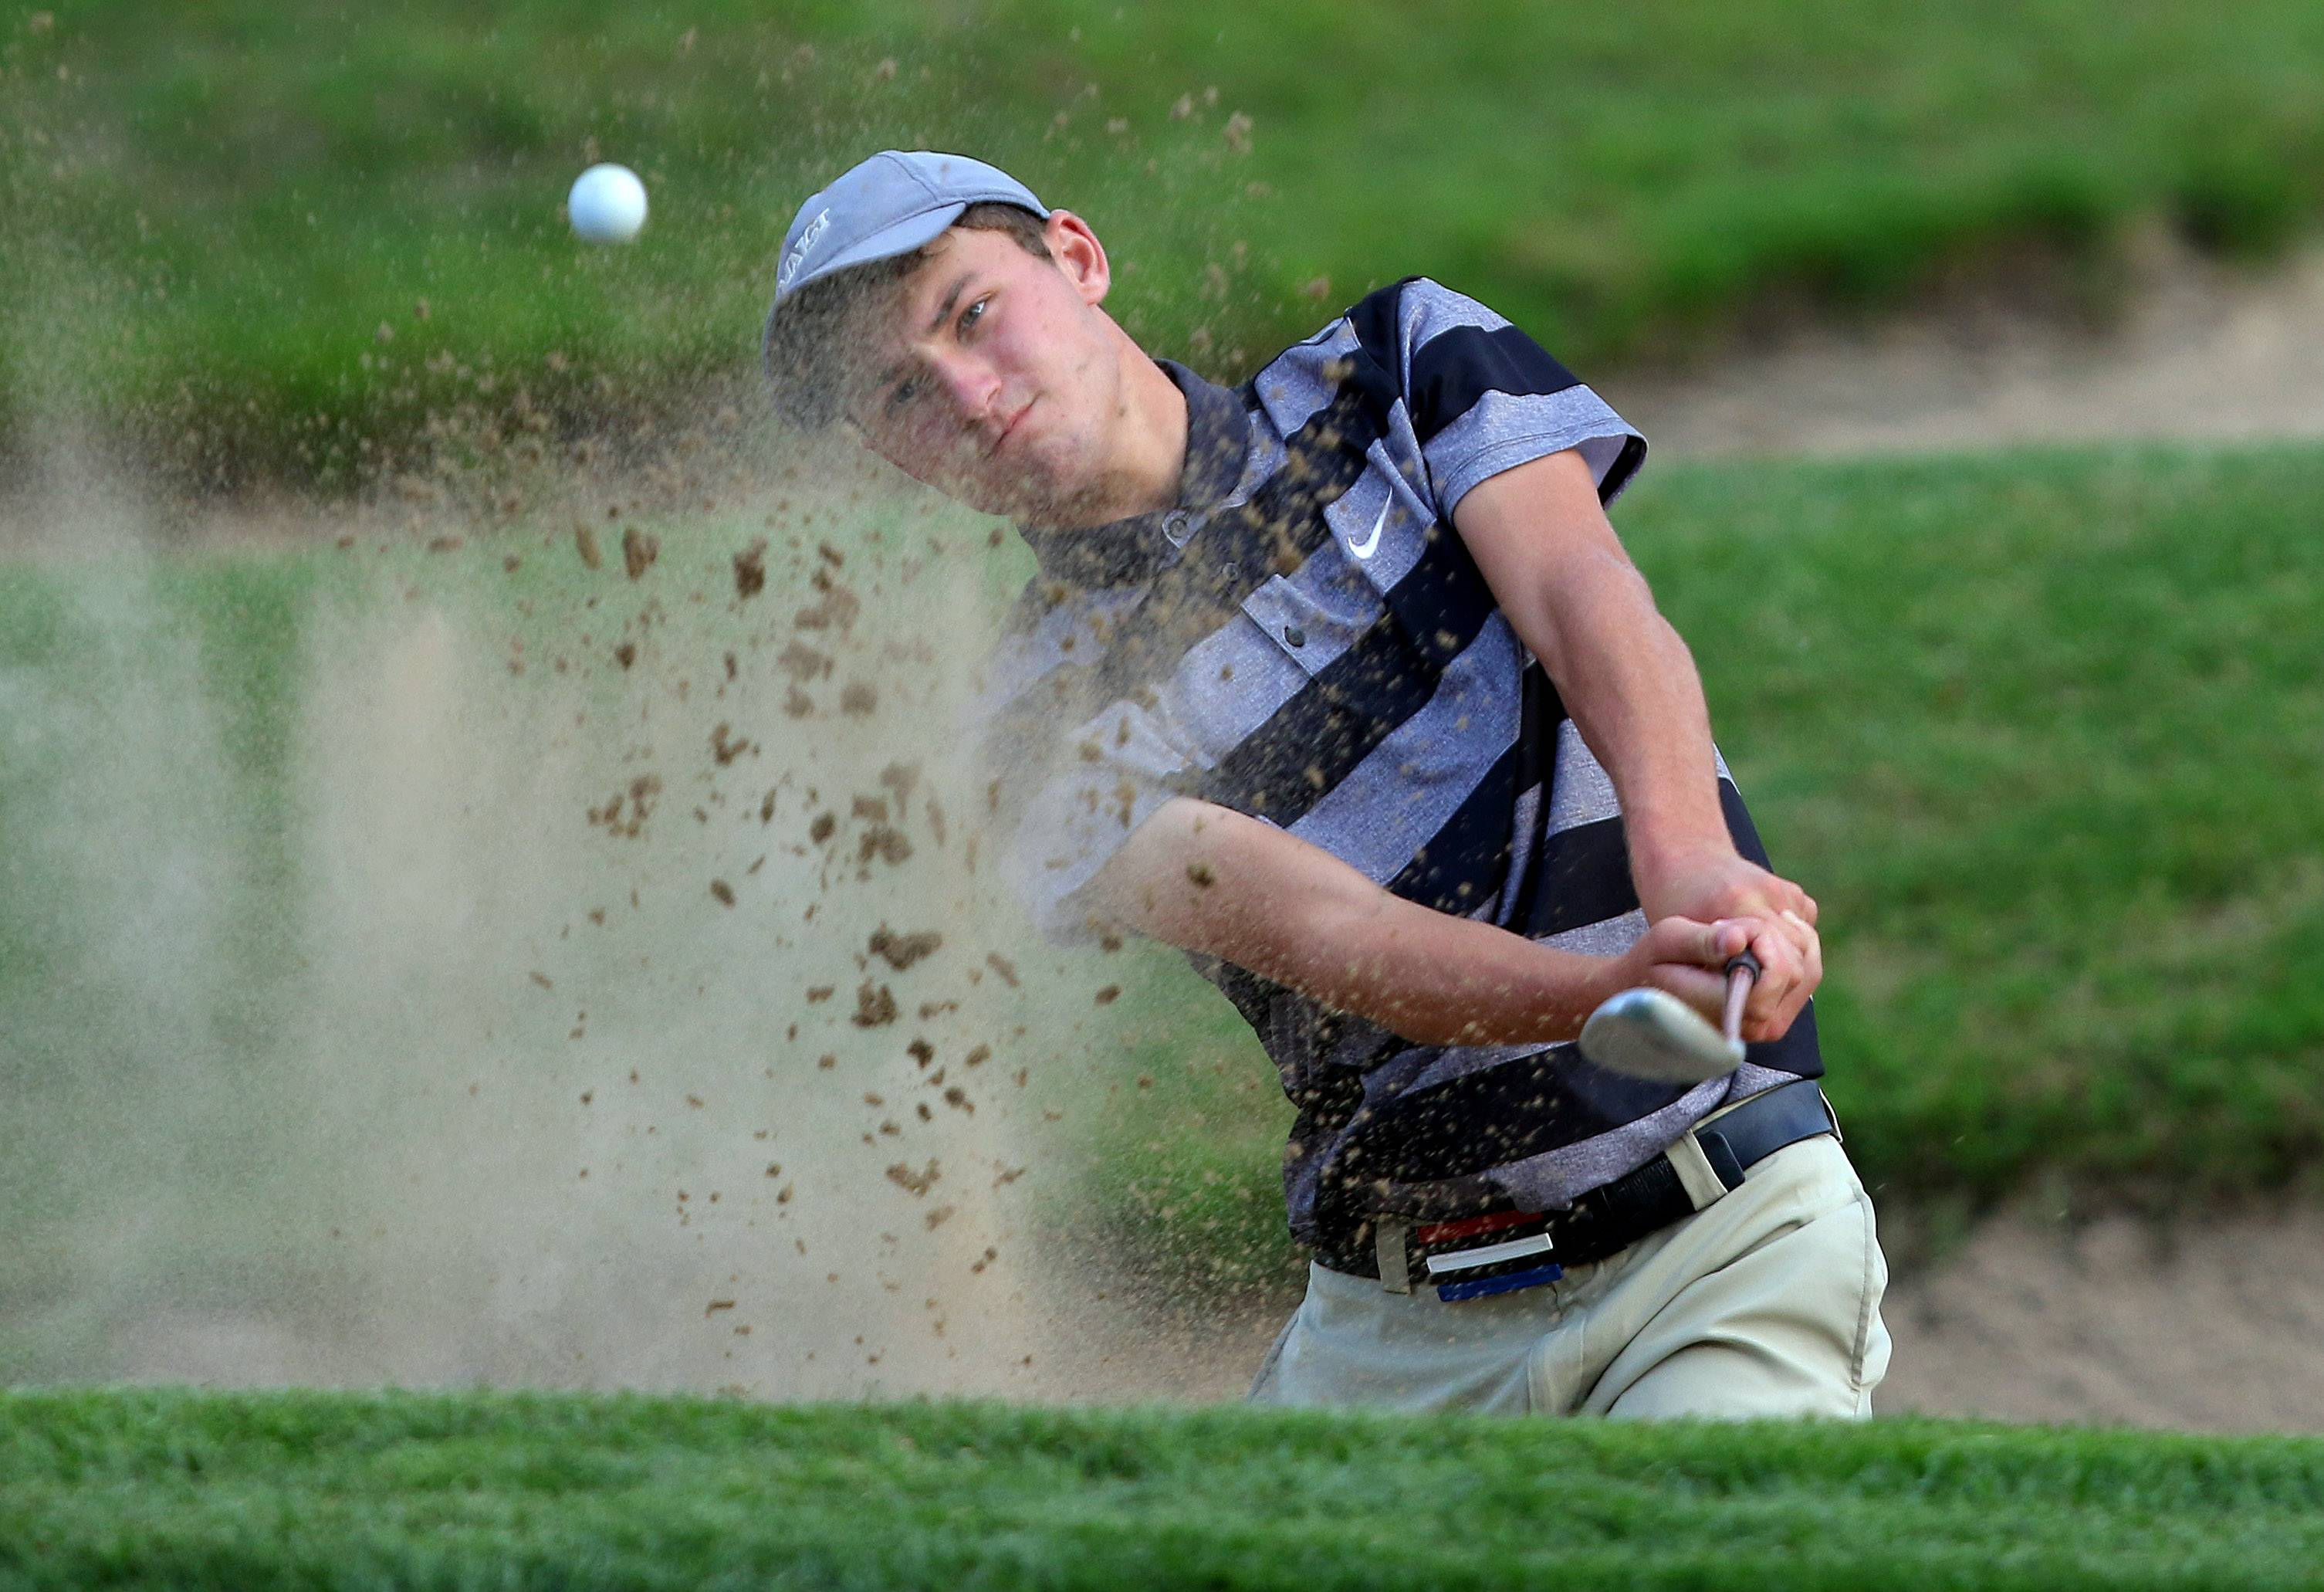 Libertyville's Jake Mueller hits from the bunker on the par-5 fourth hole on his way to a two under 34 against Mundelein Tuesday at Steeple Chase Golf Course in Mundelein.